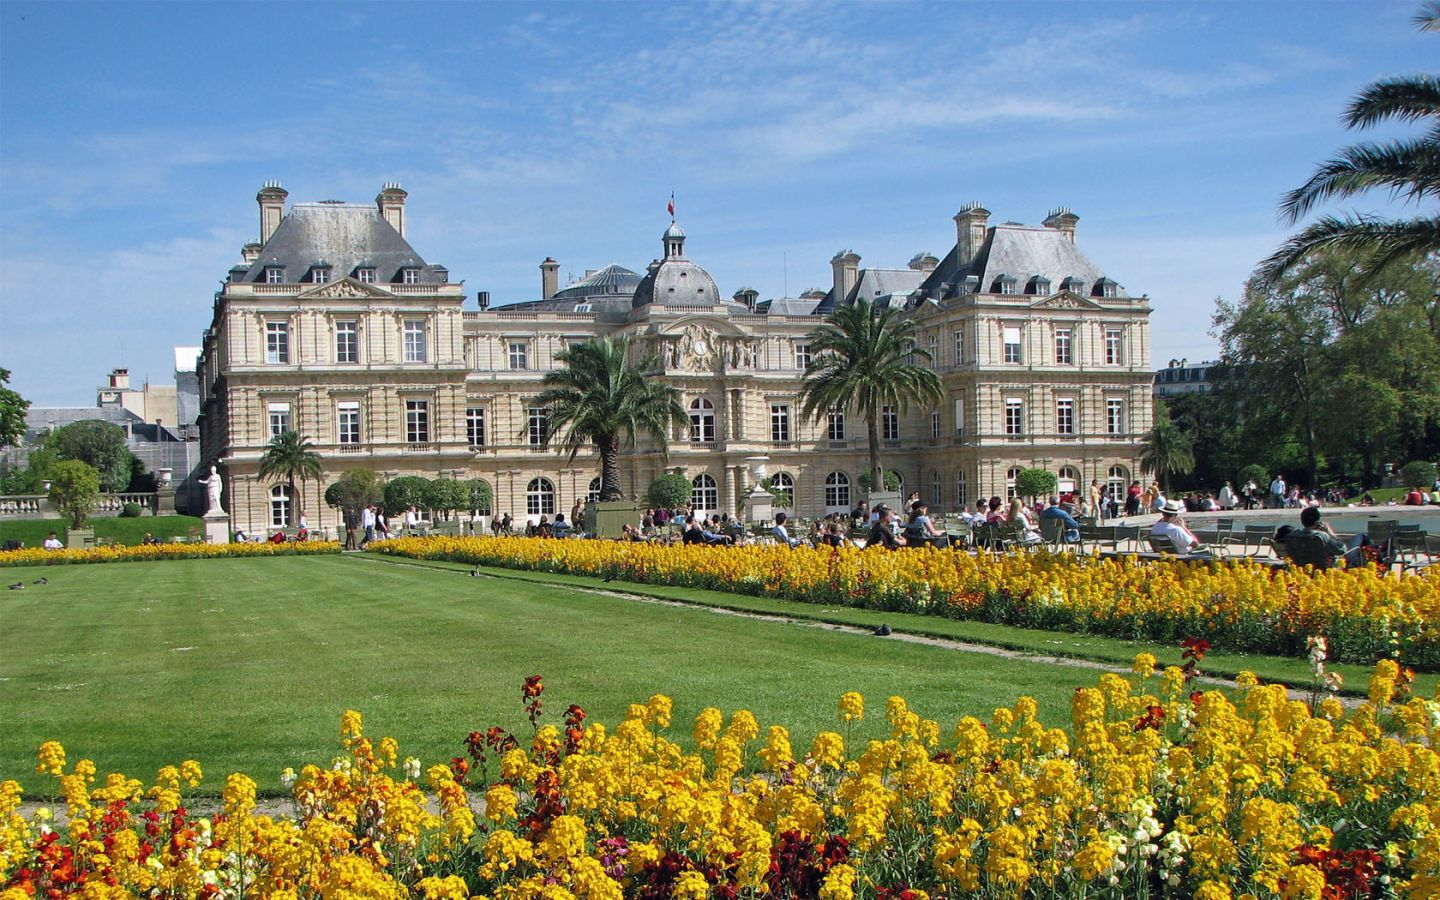 Luxembourg Palace Wallpapers and Background Images   stmednet 1440x900